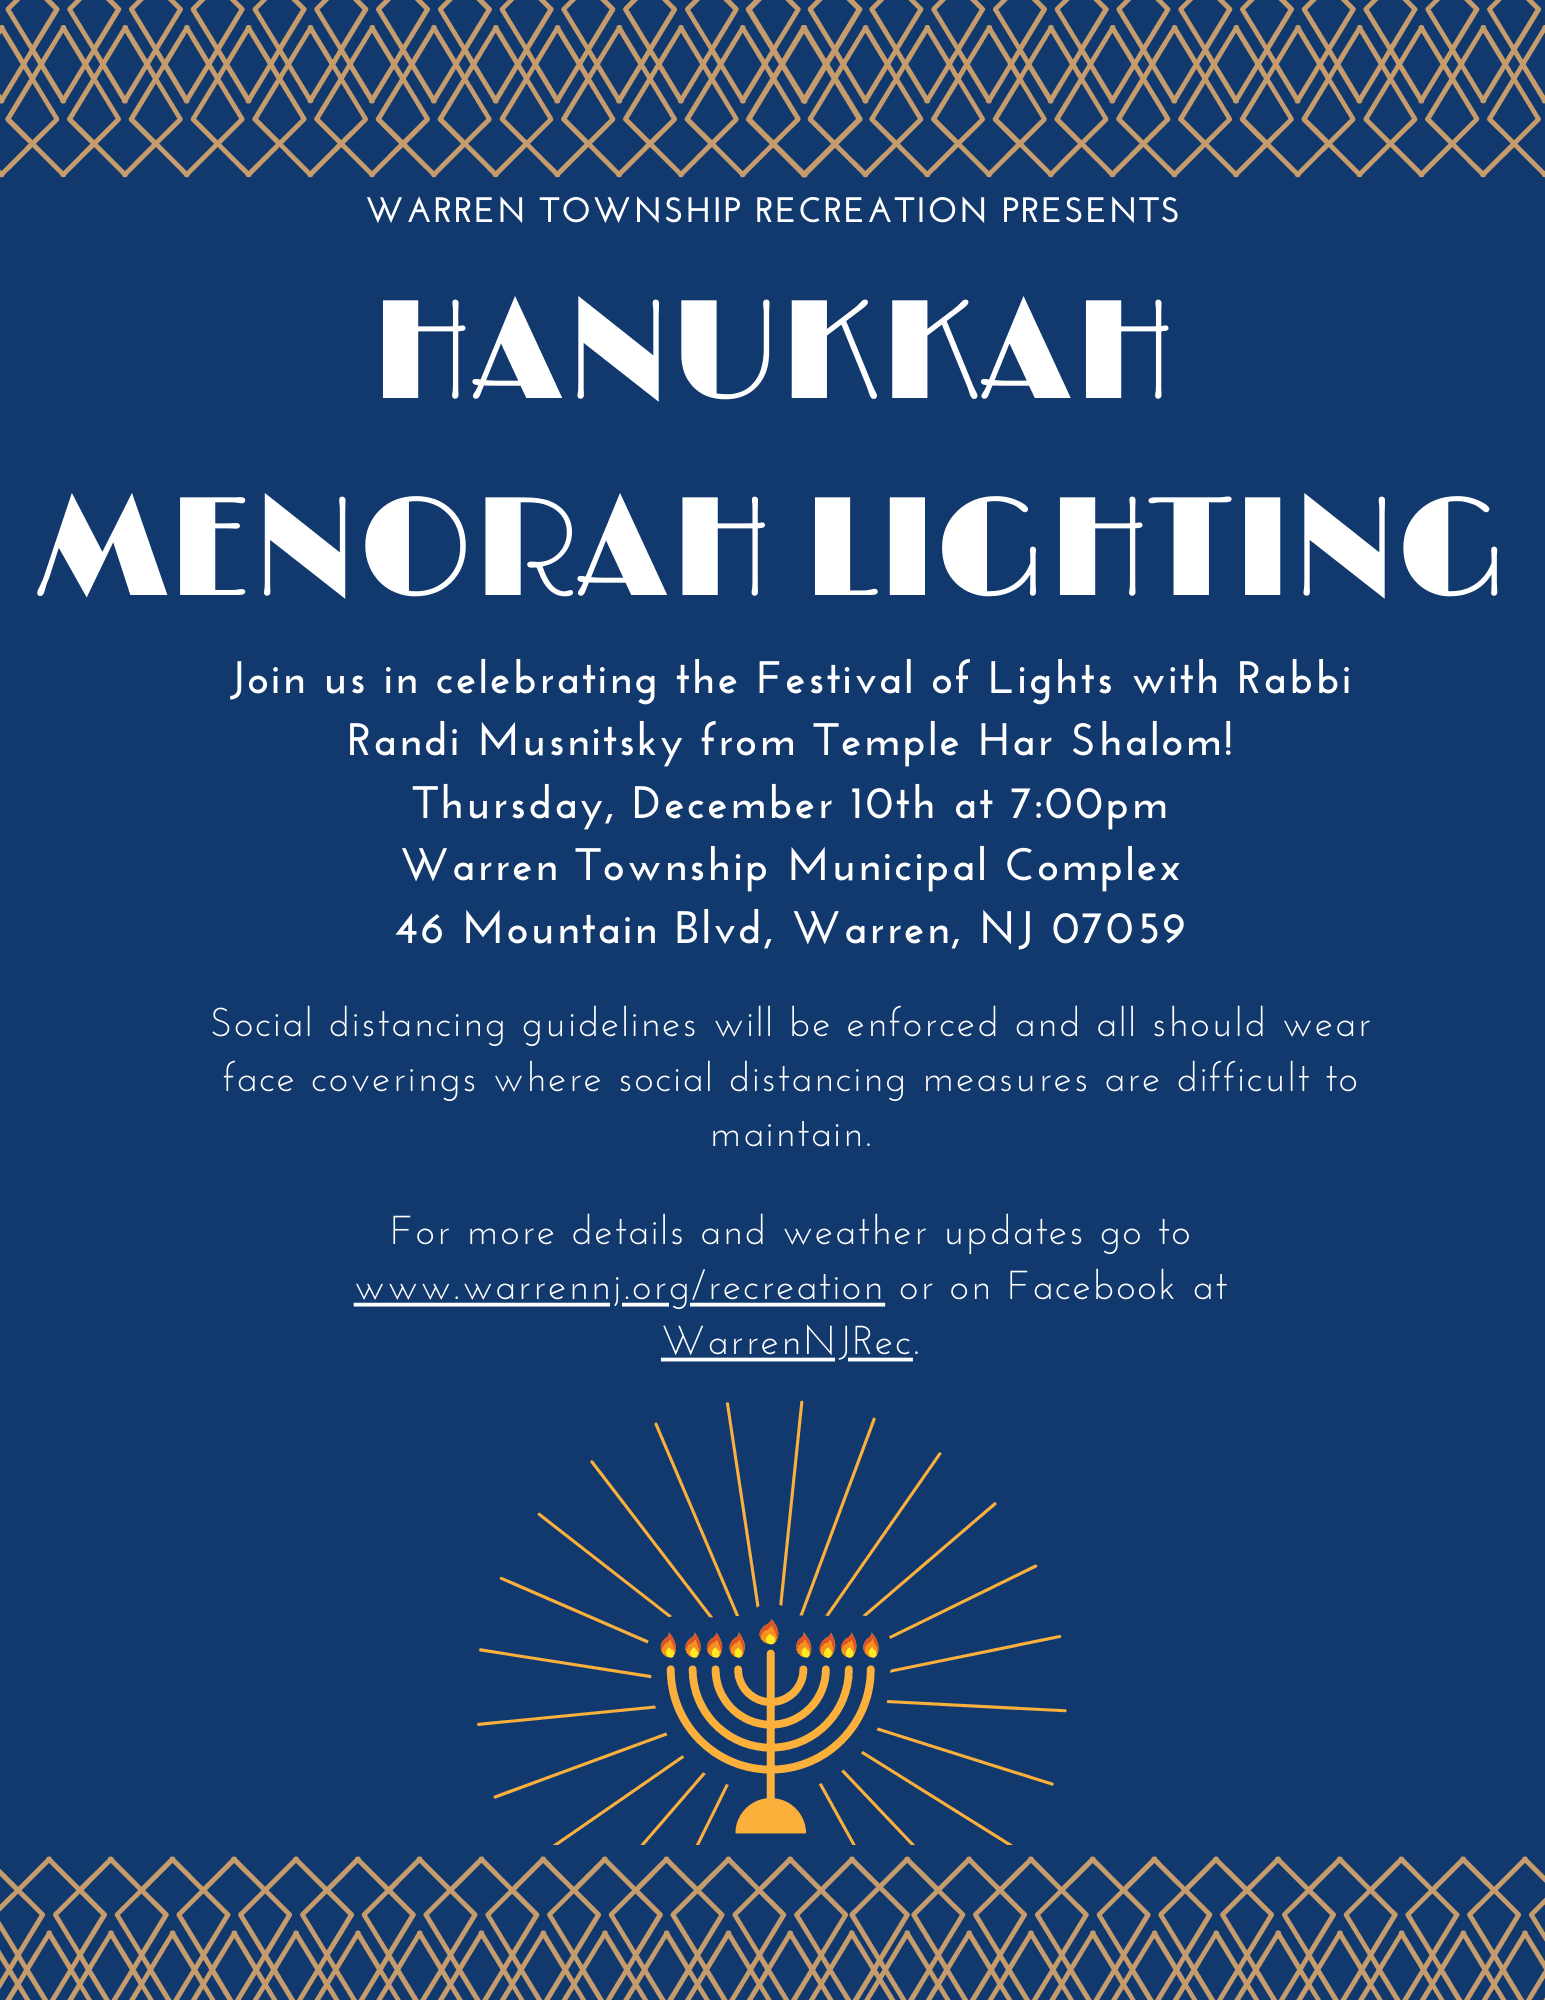 Warren Township Menorah Lighting 2020